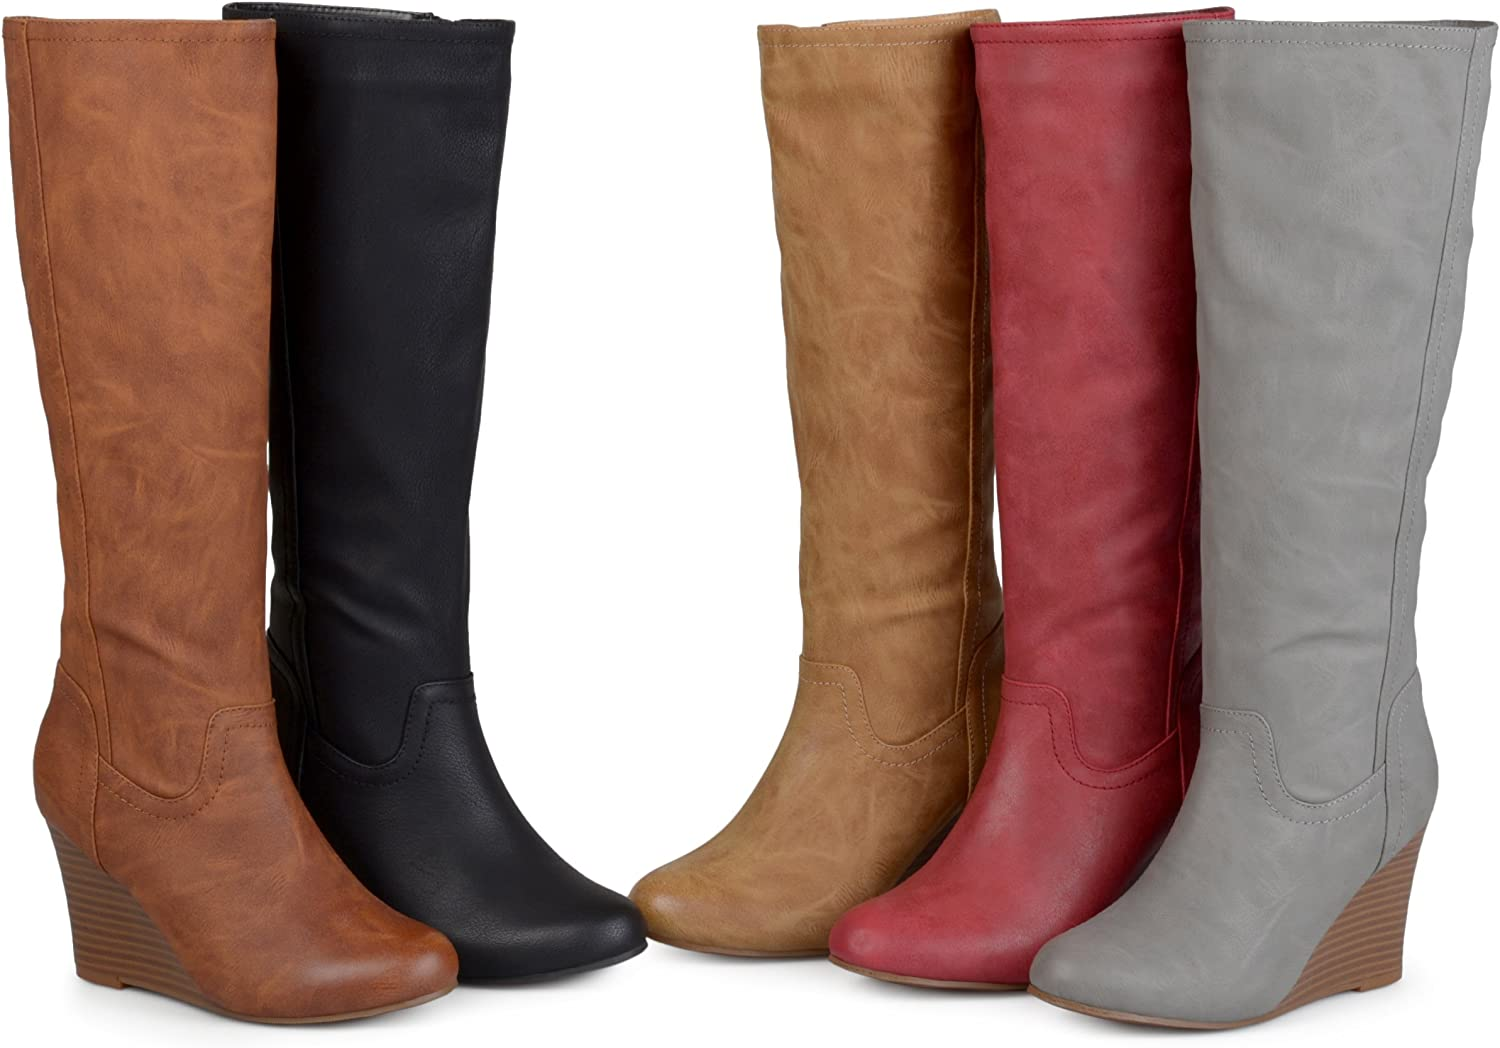 7 Regular US Womens Regular and Wide Calf Round Toe Faux Leather Mid-Calf Wedge Boots Red Brinley Co